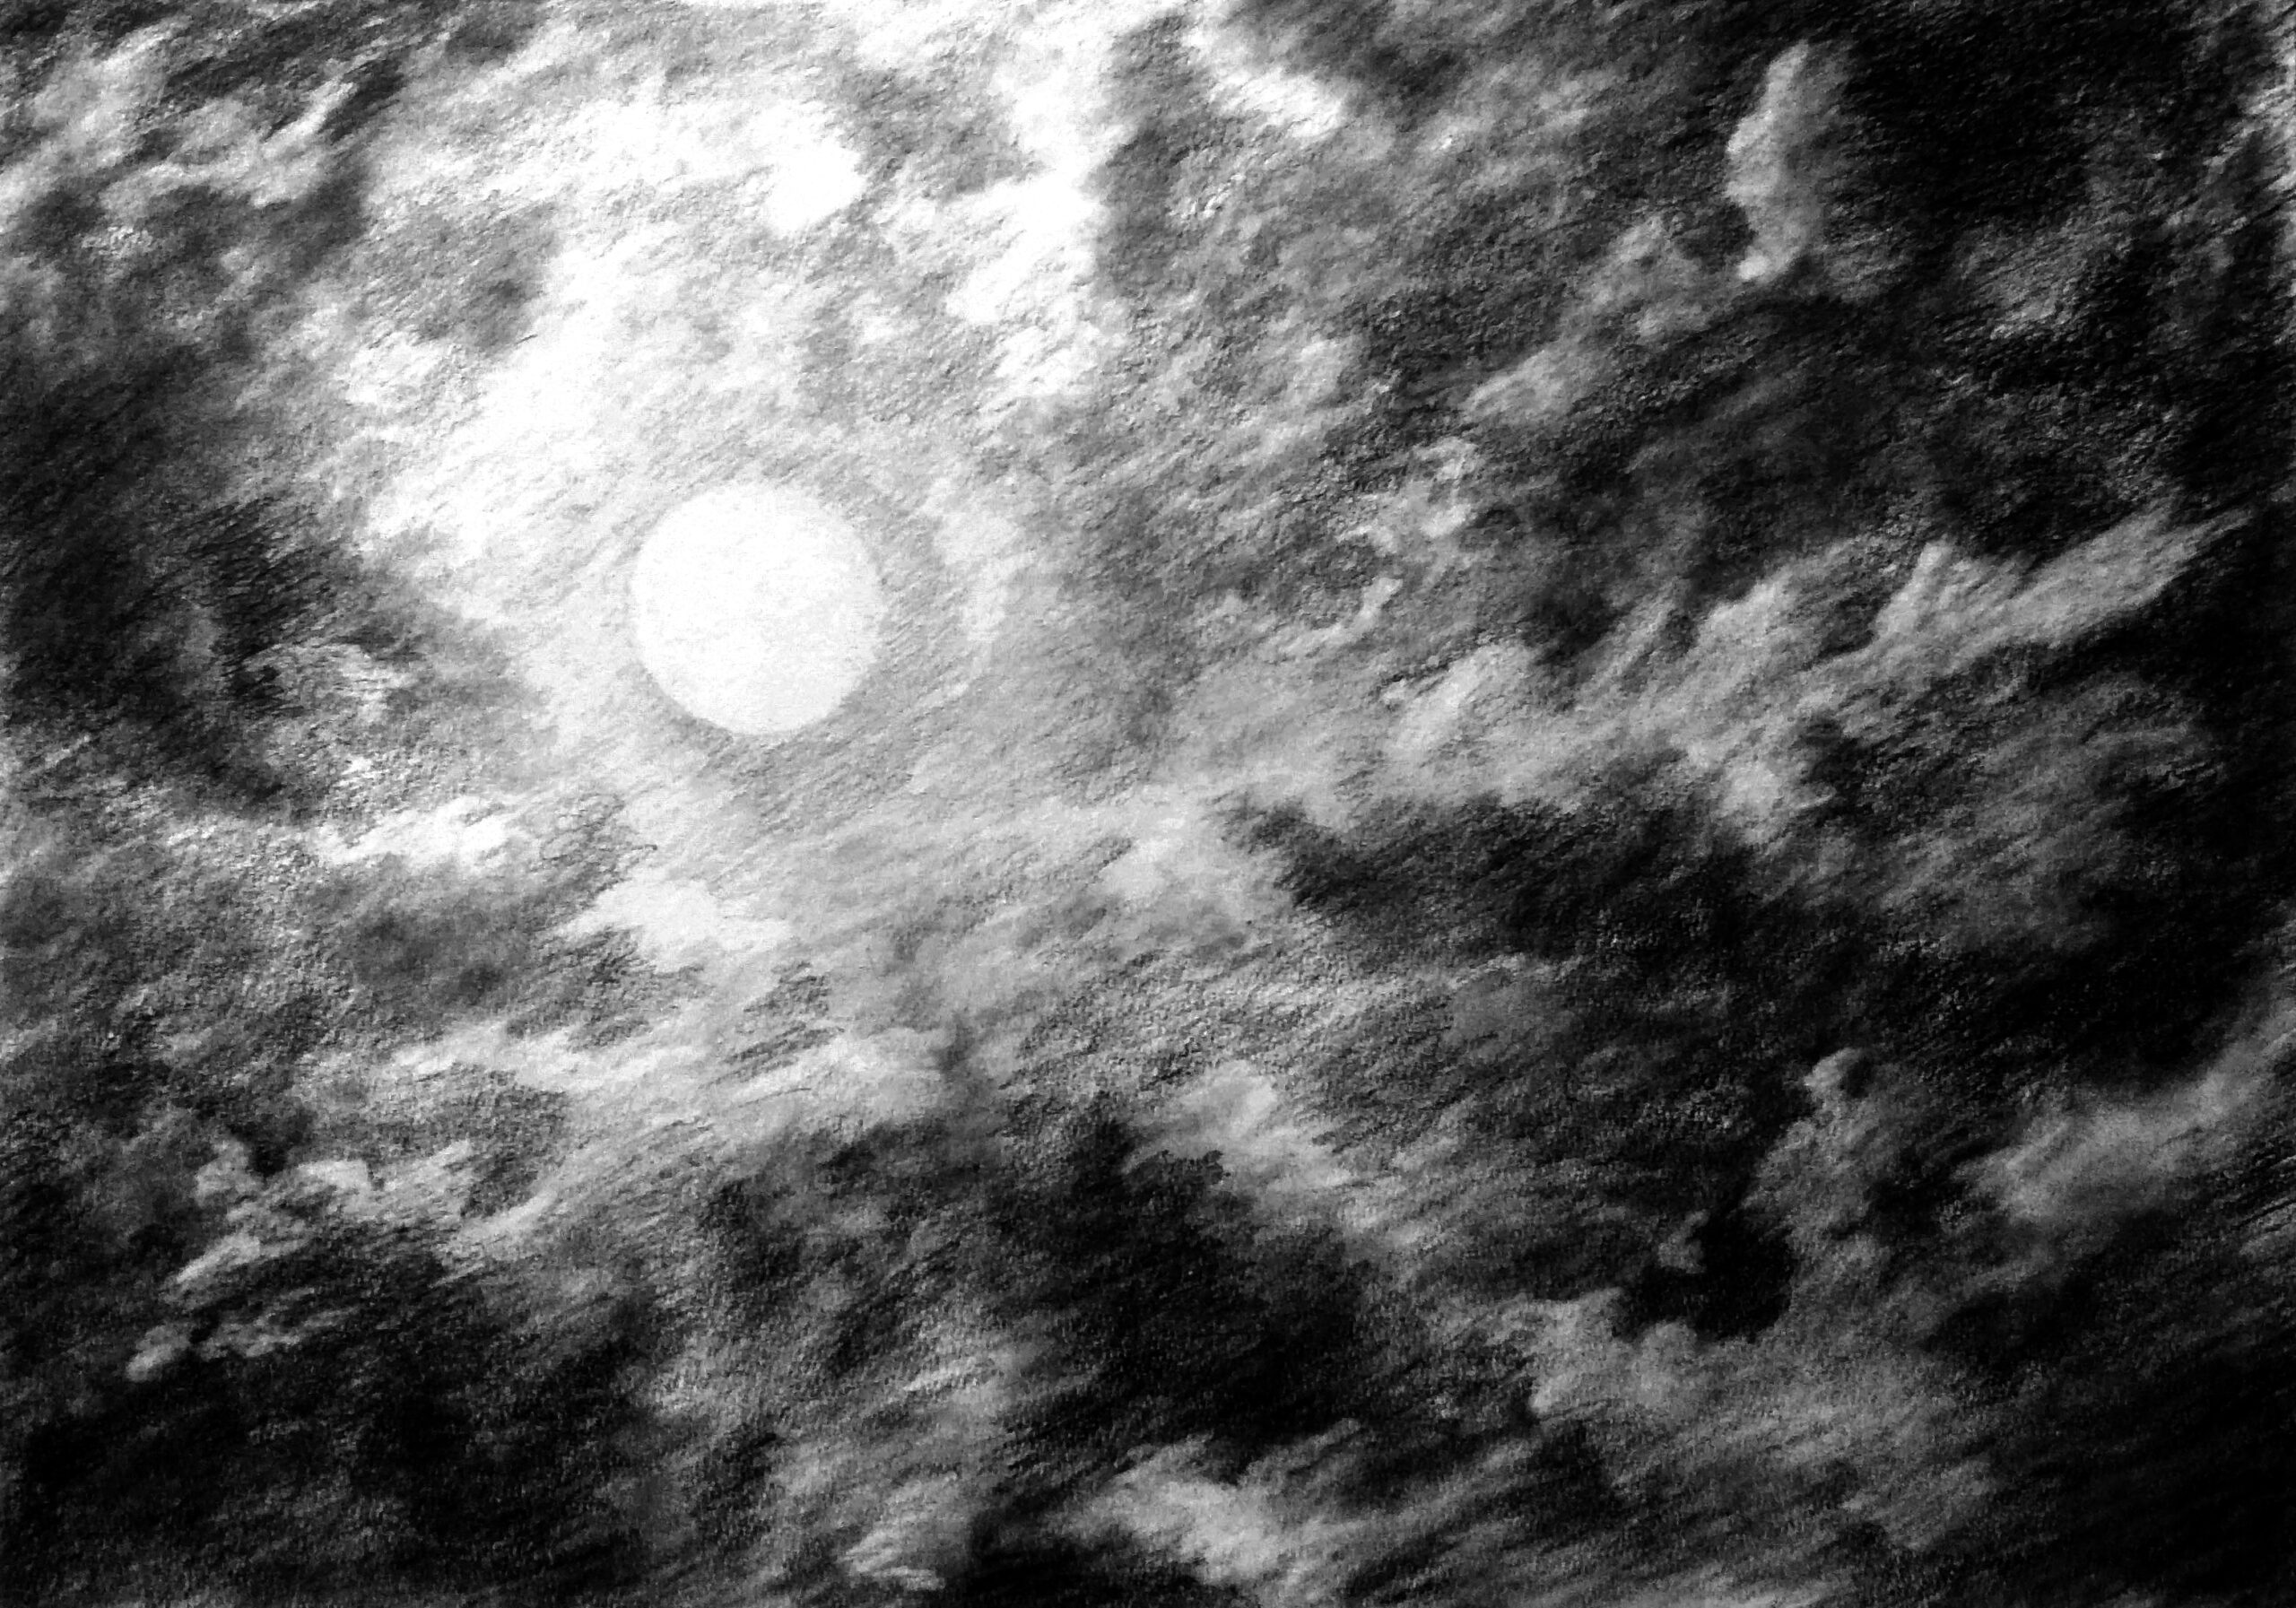 A pencil rendering of a cloudy night sky. The moon shines brightly through the clouds